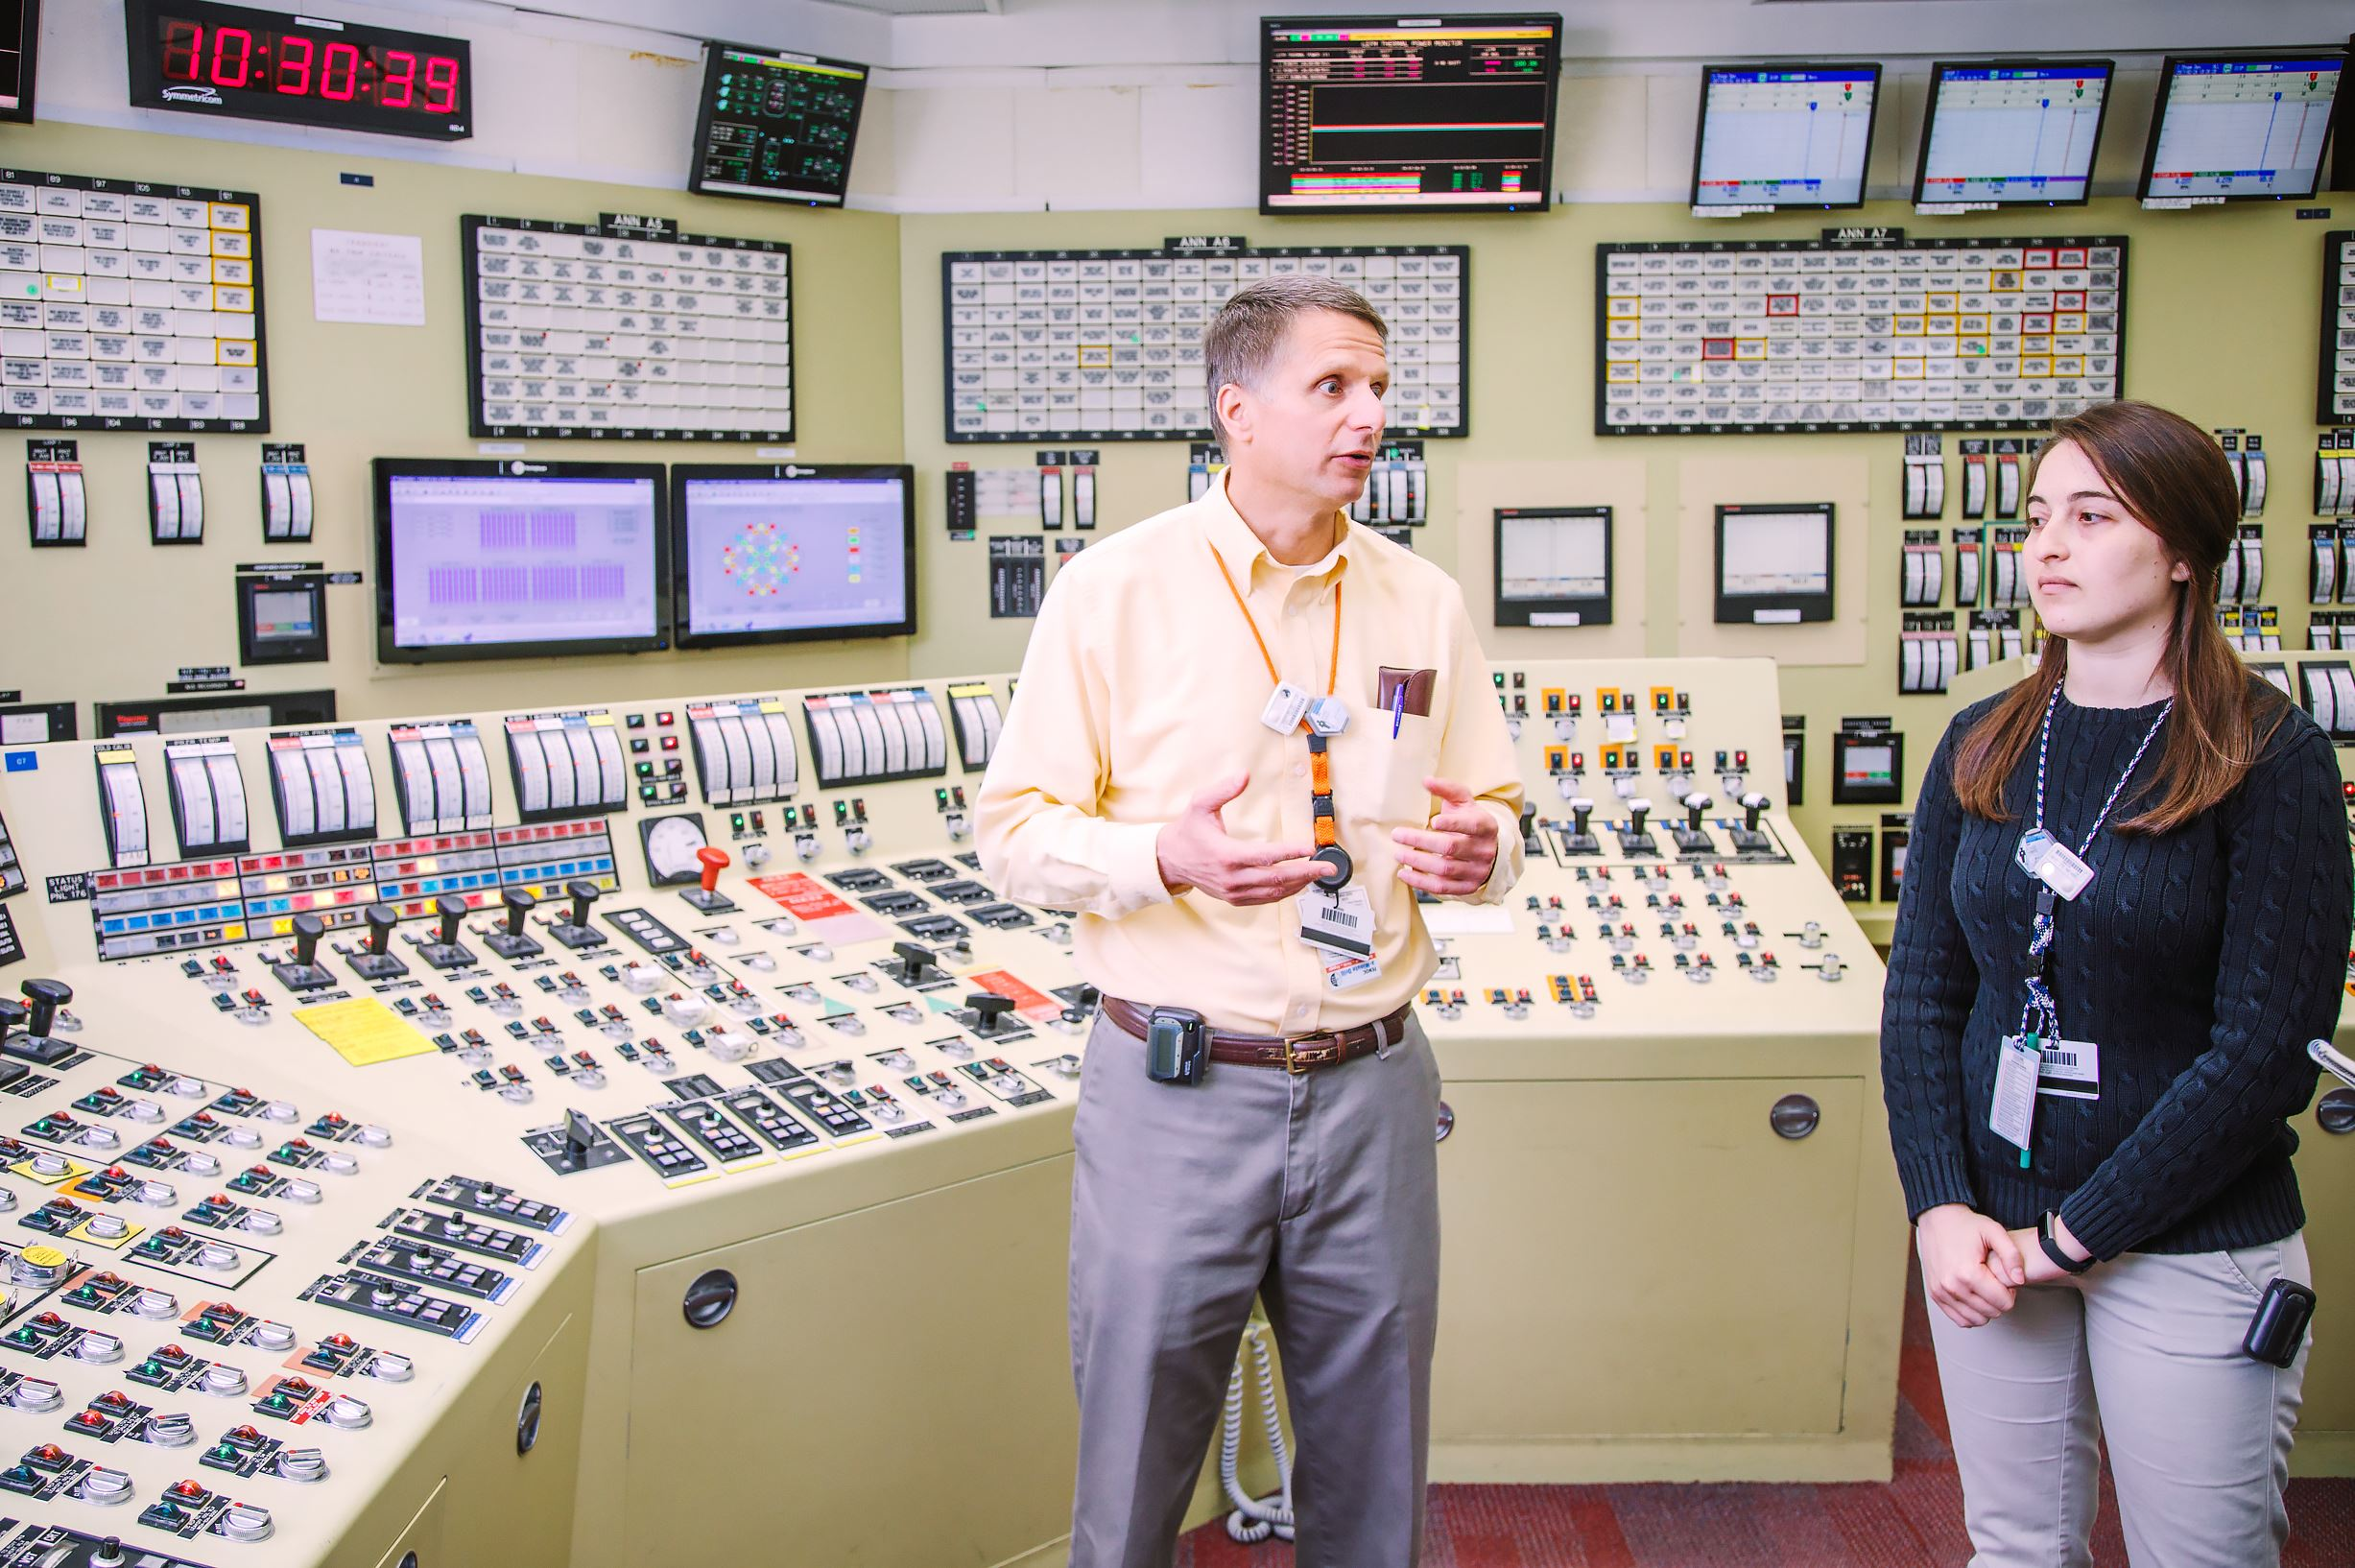 20170224arNuclearInspector03-2 Jim Krafty and Stacey Horvitz, resident inspectors for the U.S. Nuclear Regulatory Commission at the Beaver Valley nuclear power plant, explain the plant's simulator, which is a room that is a replica of the plant's control room.